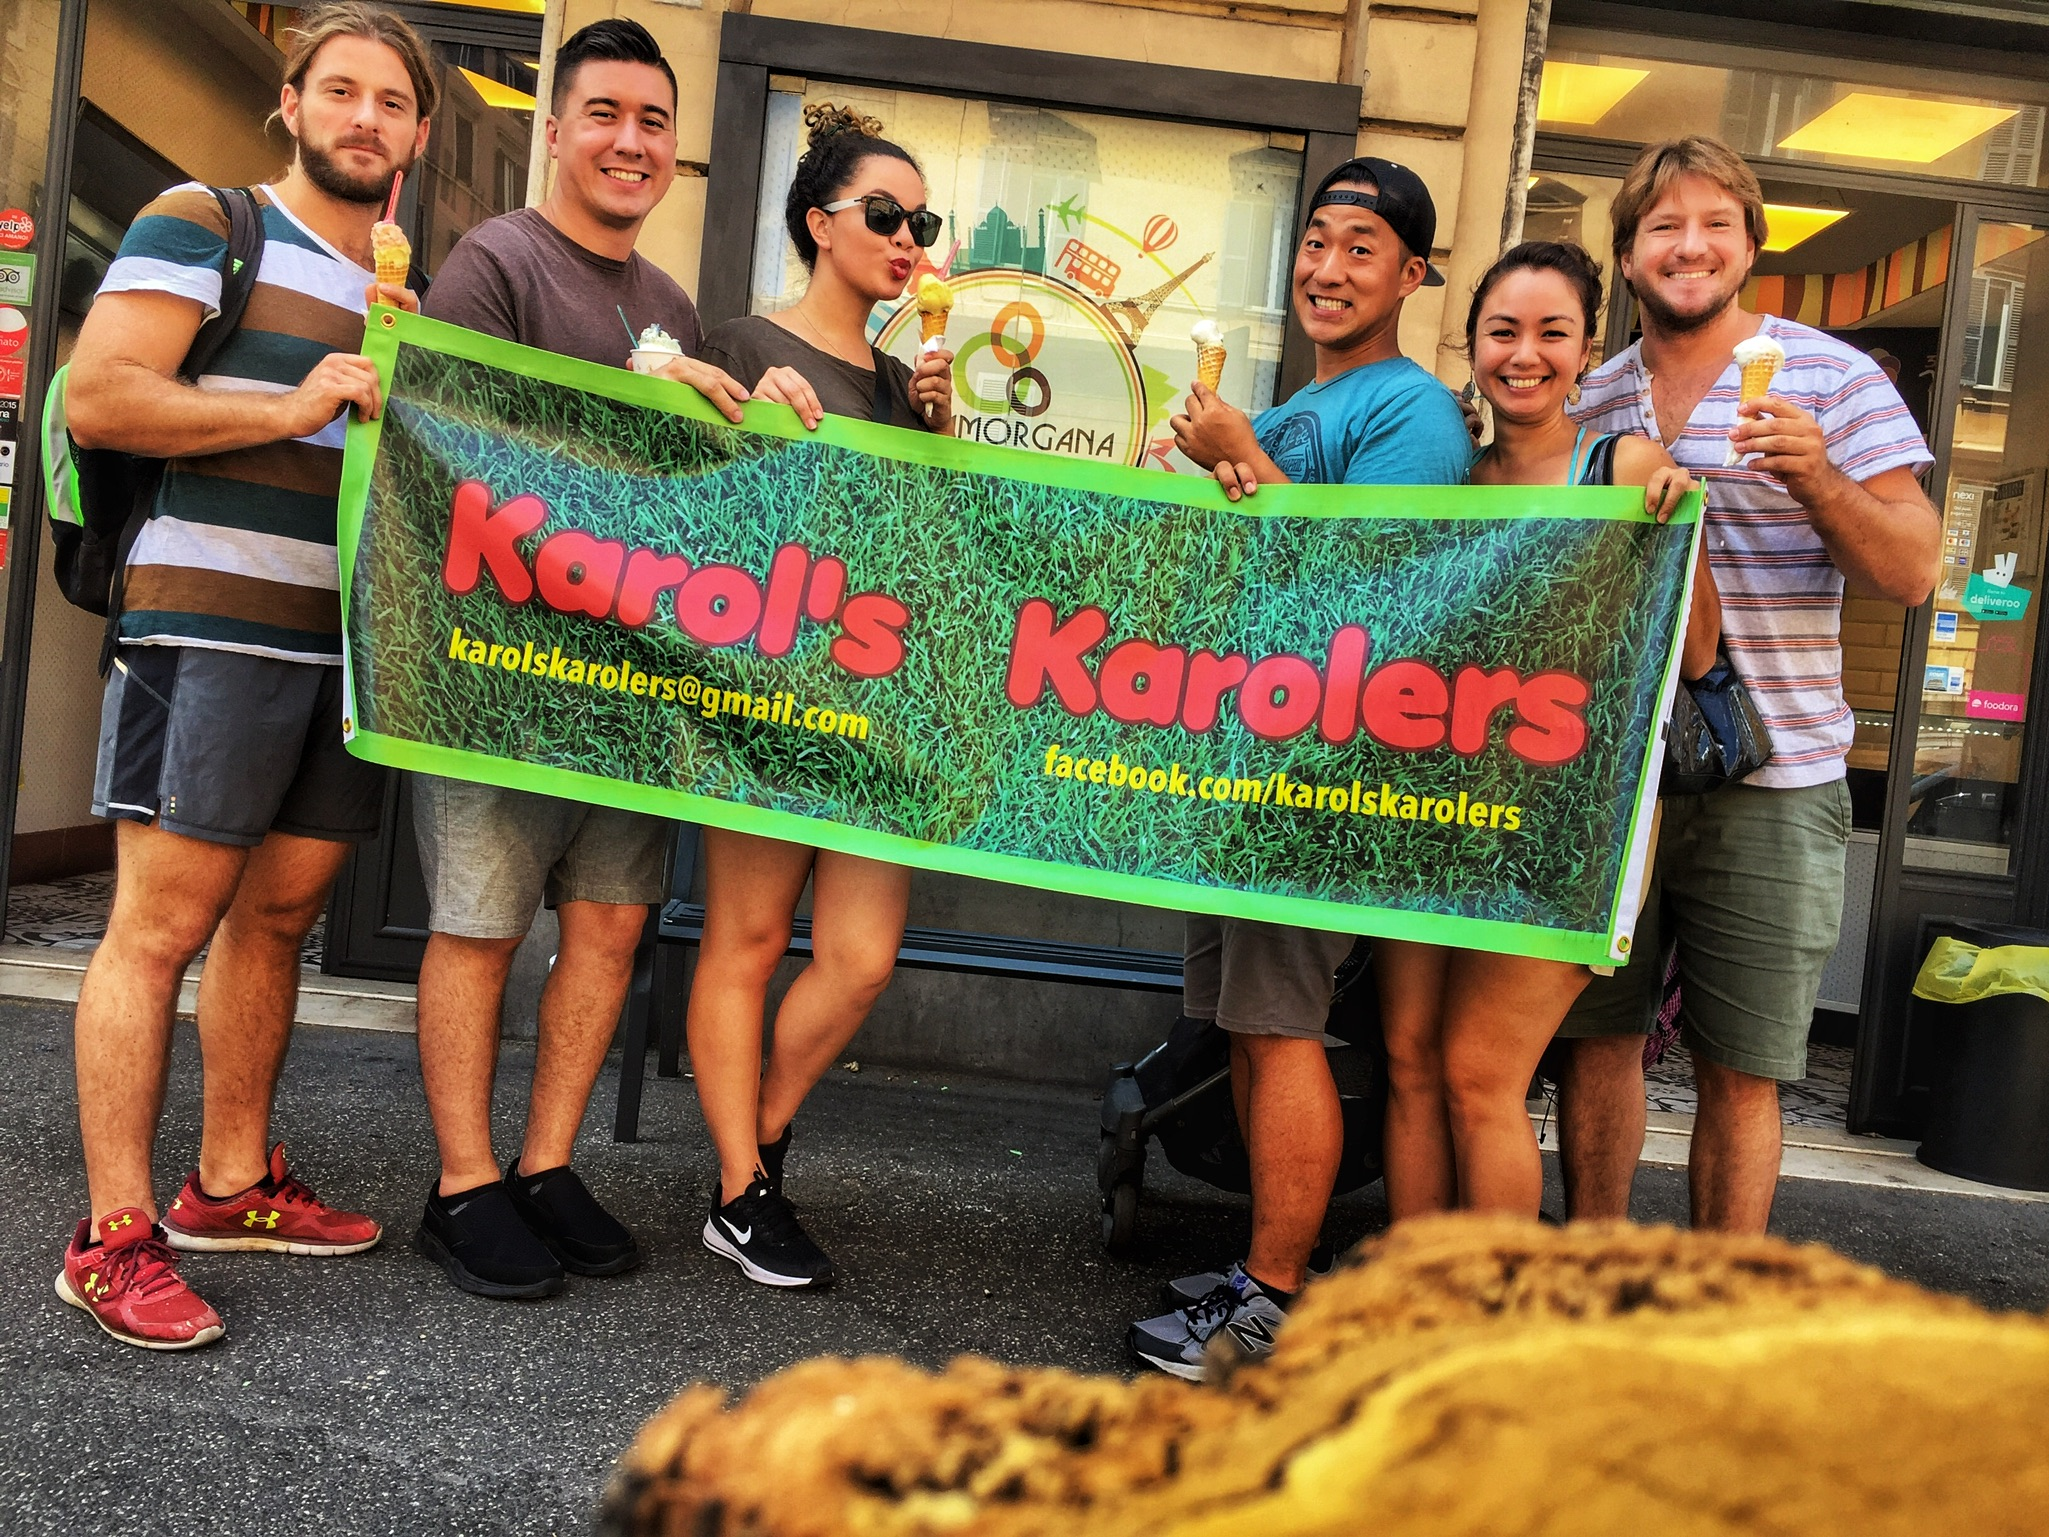 Is this real or is it a FATA MORGANA? The Karolers are enjoying gelato in Rome!